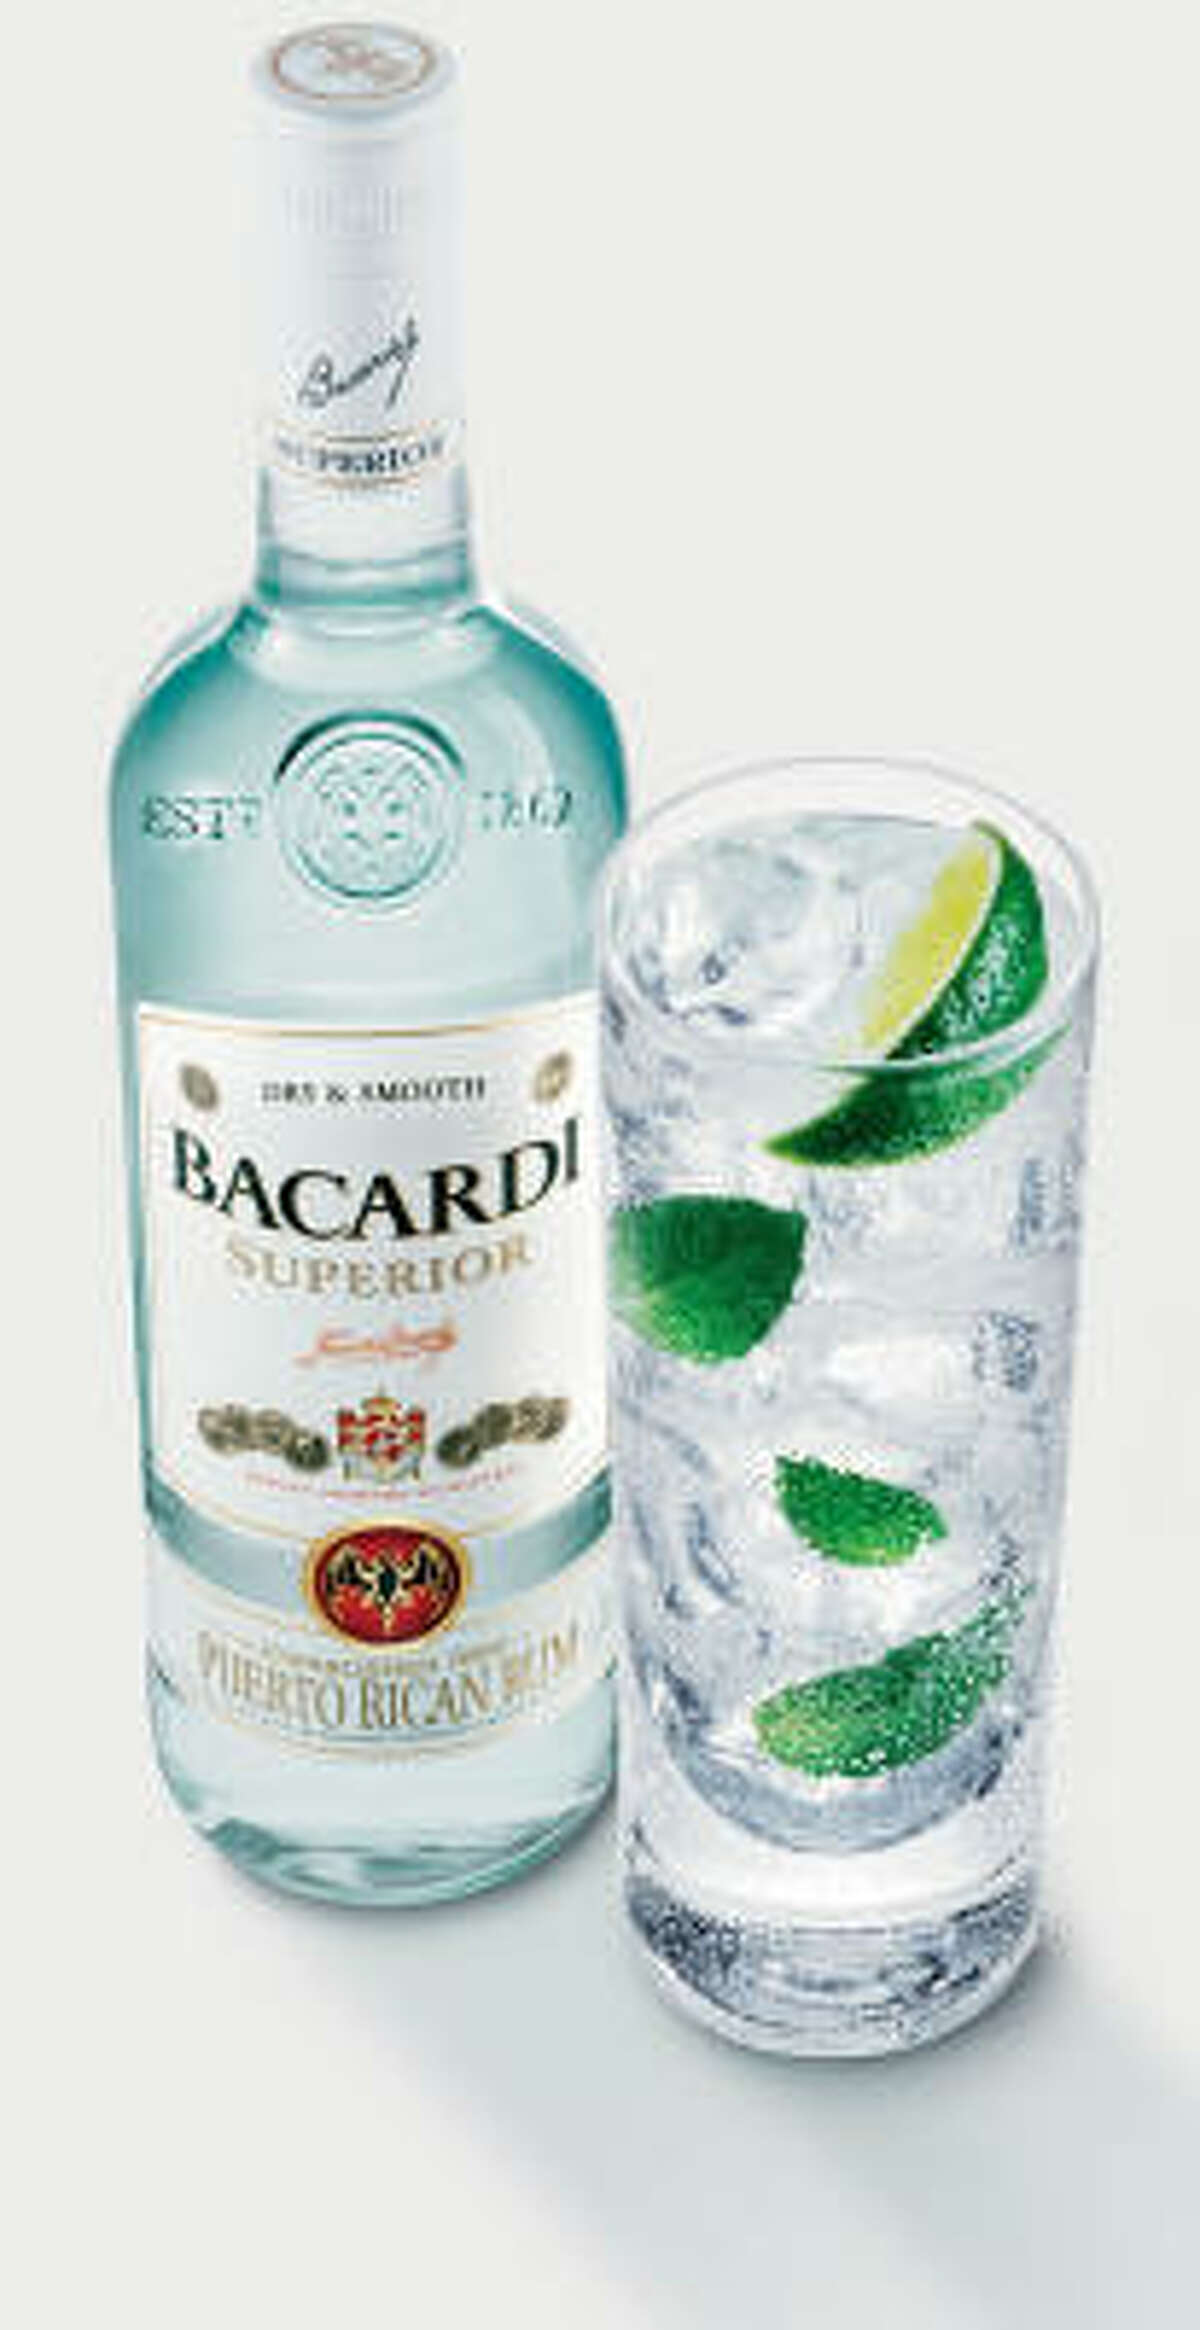 The bat on the Bacardi label represents health, family unity and good fortune.